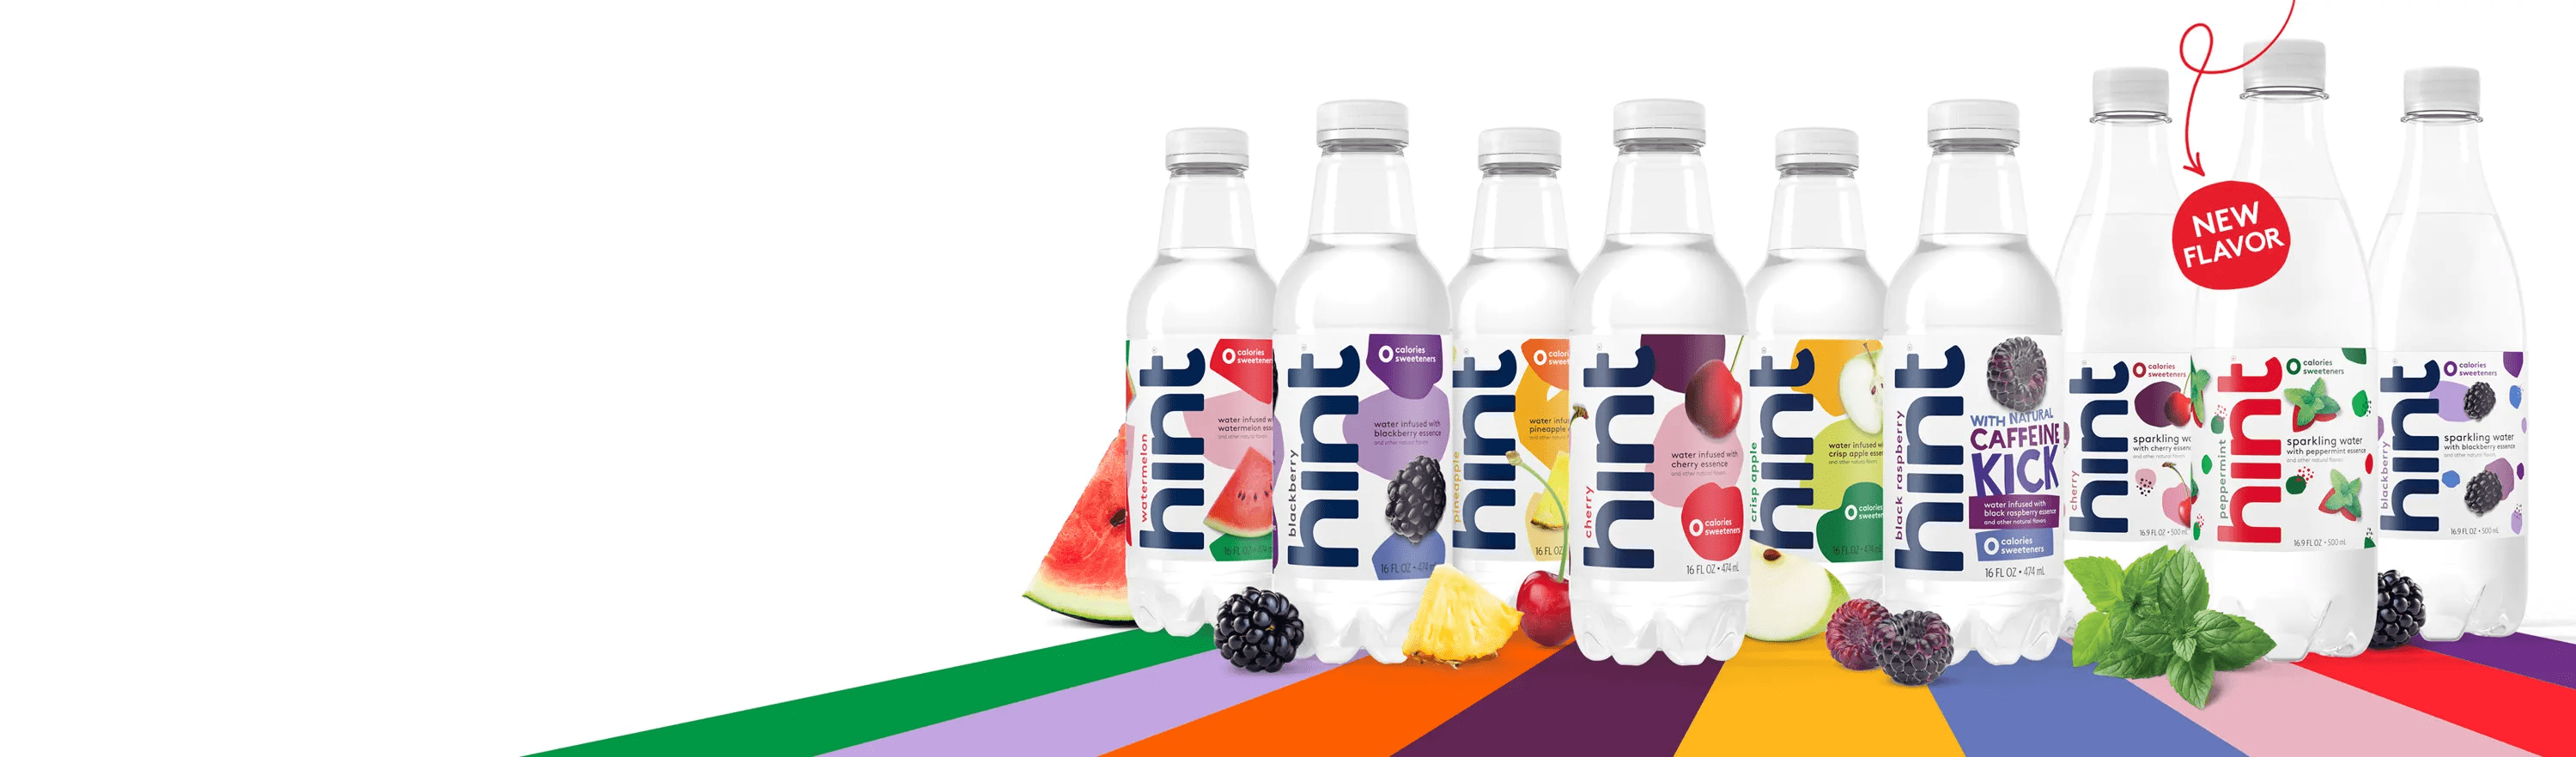 Hint Water Cyber Monday Coupon: Up to 30% Off Cases!